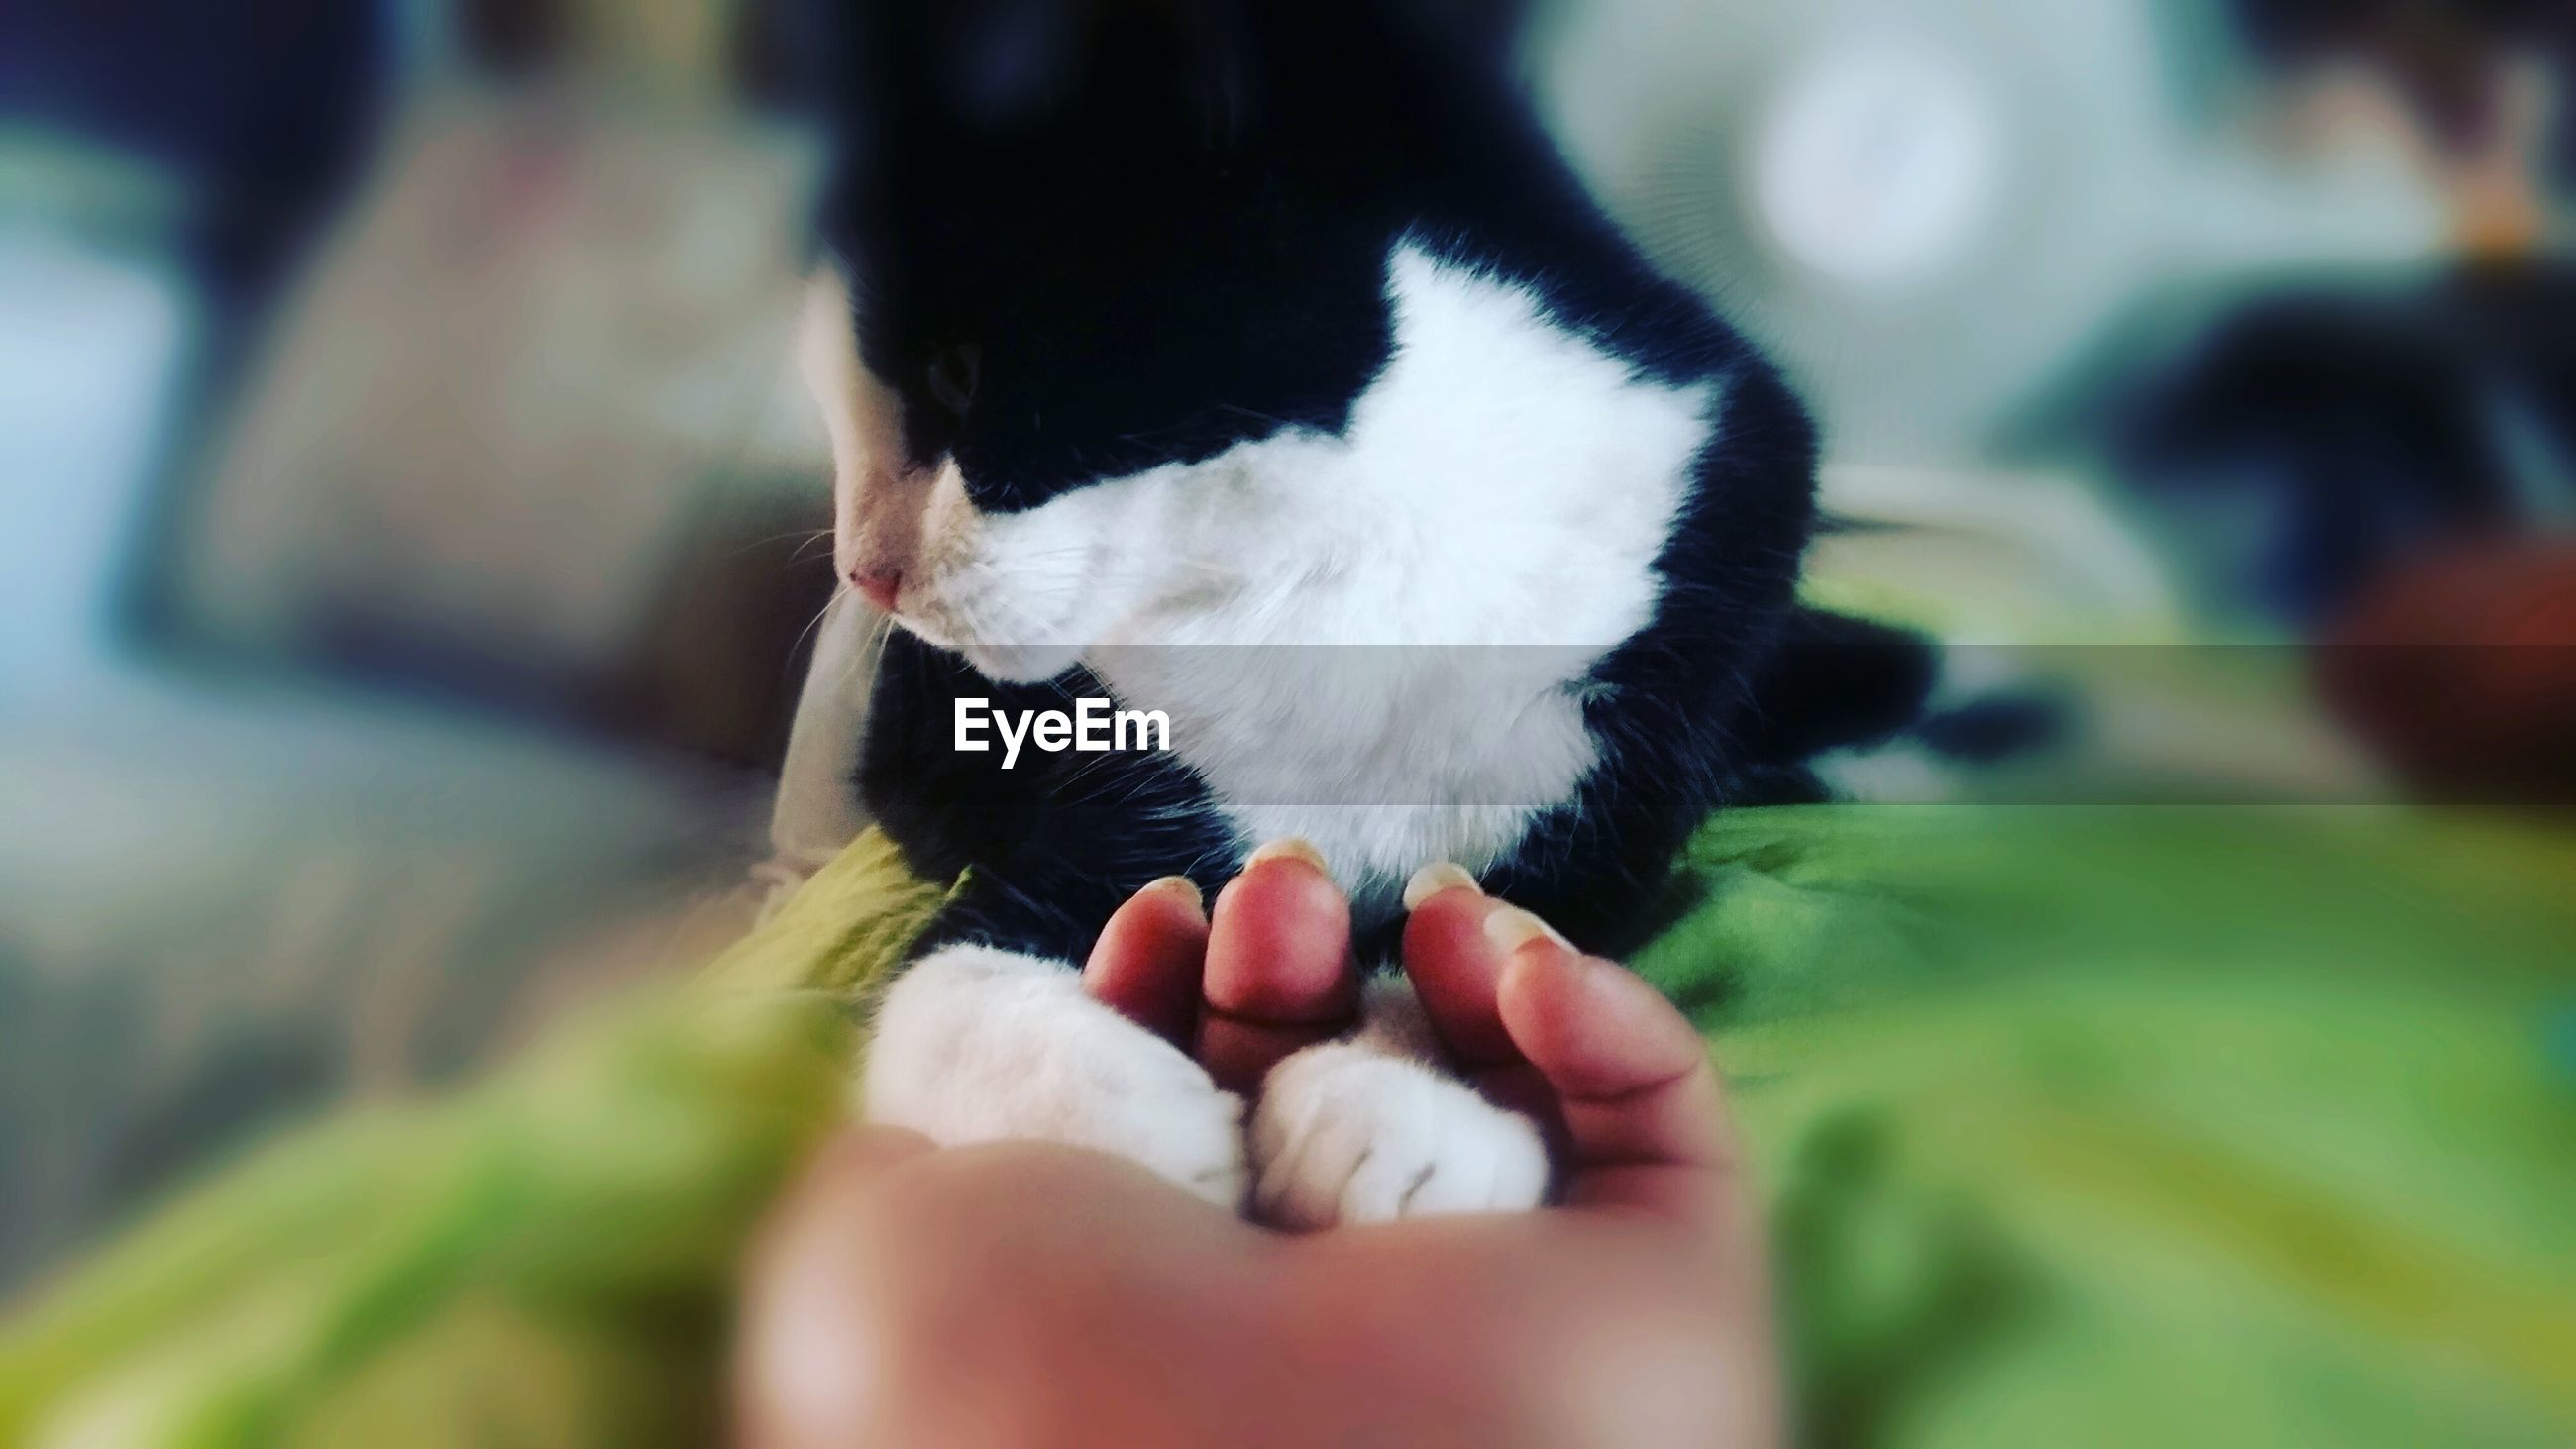 pets, human hand, domestic animals, animal themes, one animal, domestic cat, human body part, mammal, real people, indoors, holding, one person, young animal, feline, day, close-up, nature, people